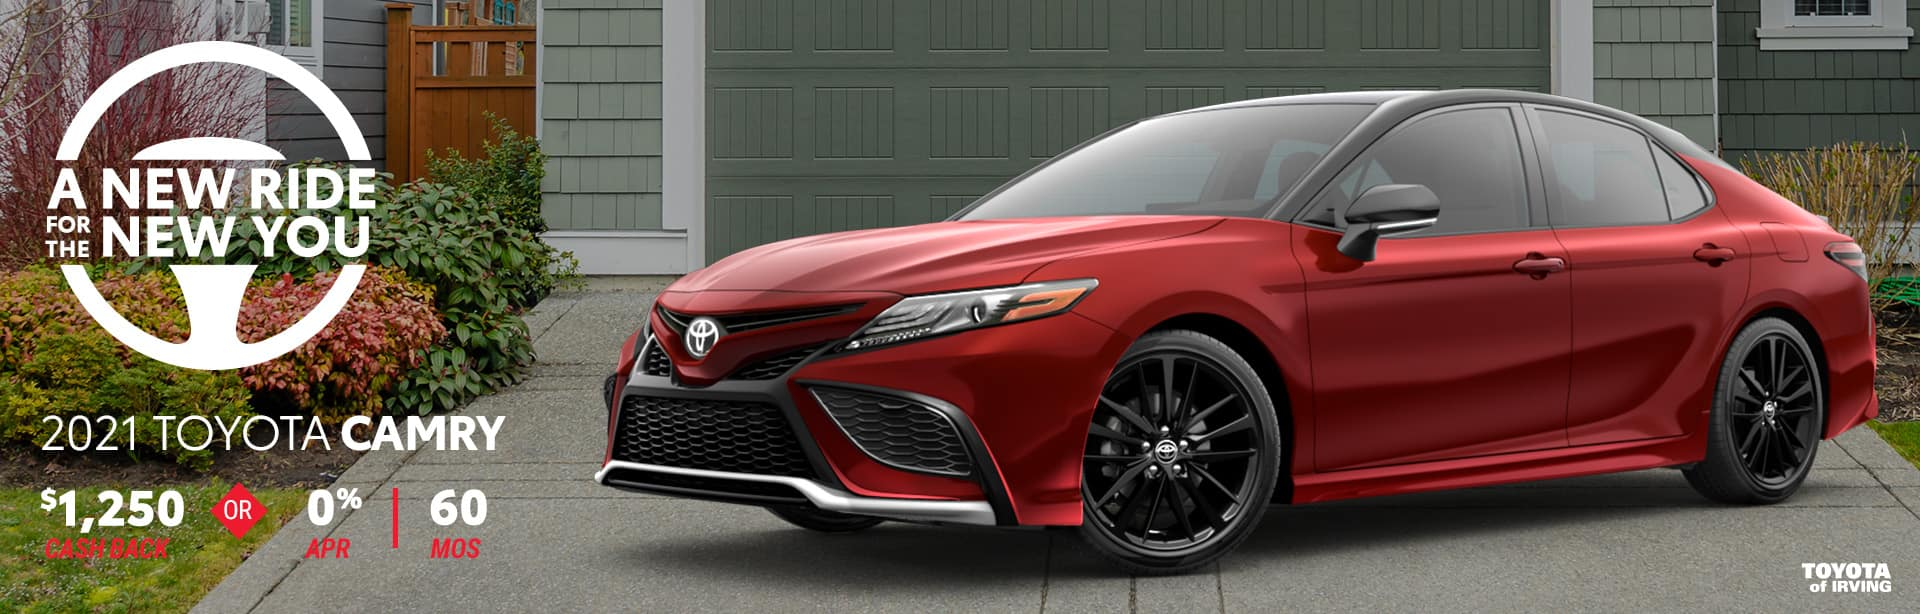 2021 Toyota Camry April Incentives